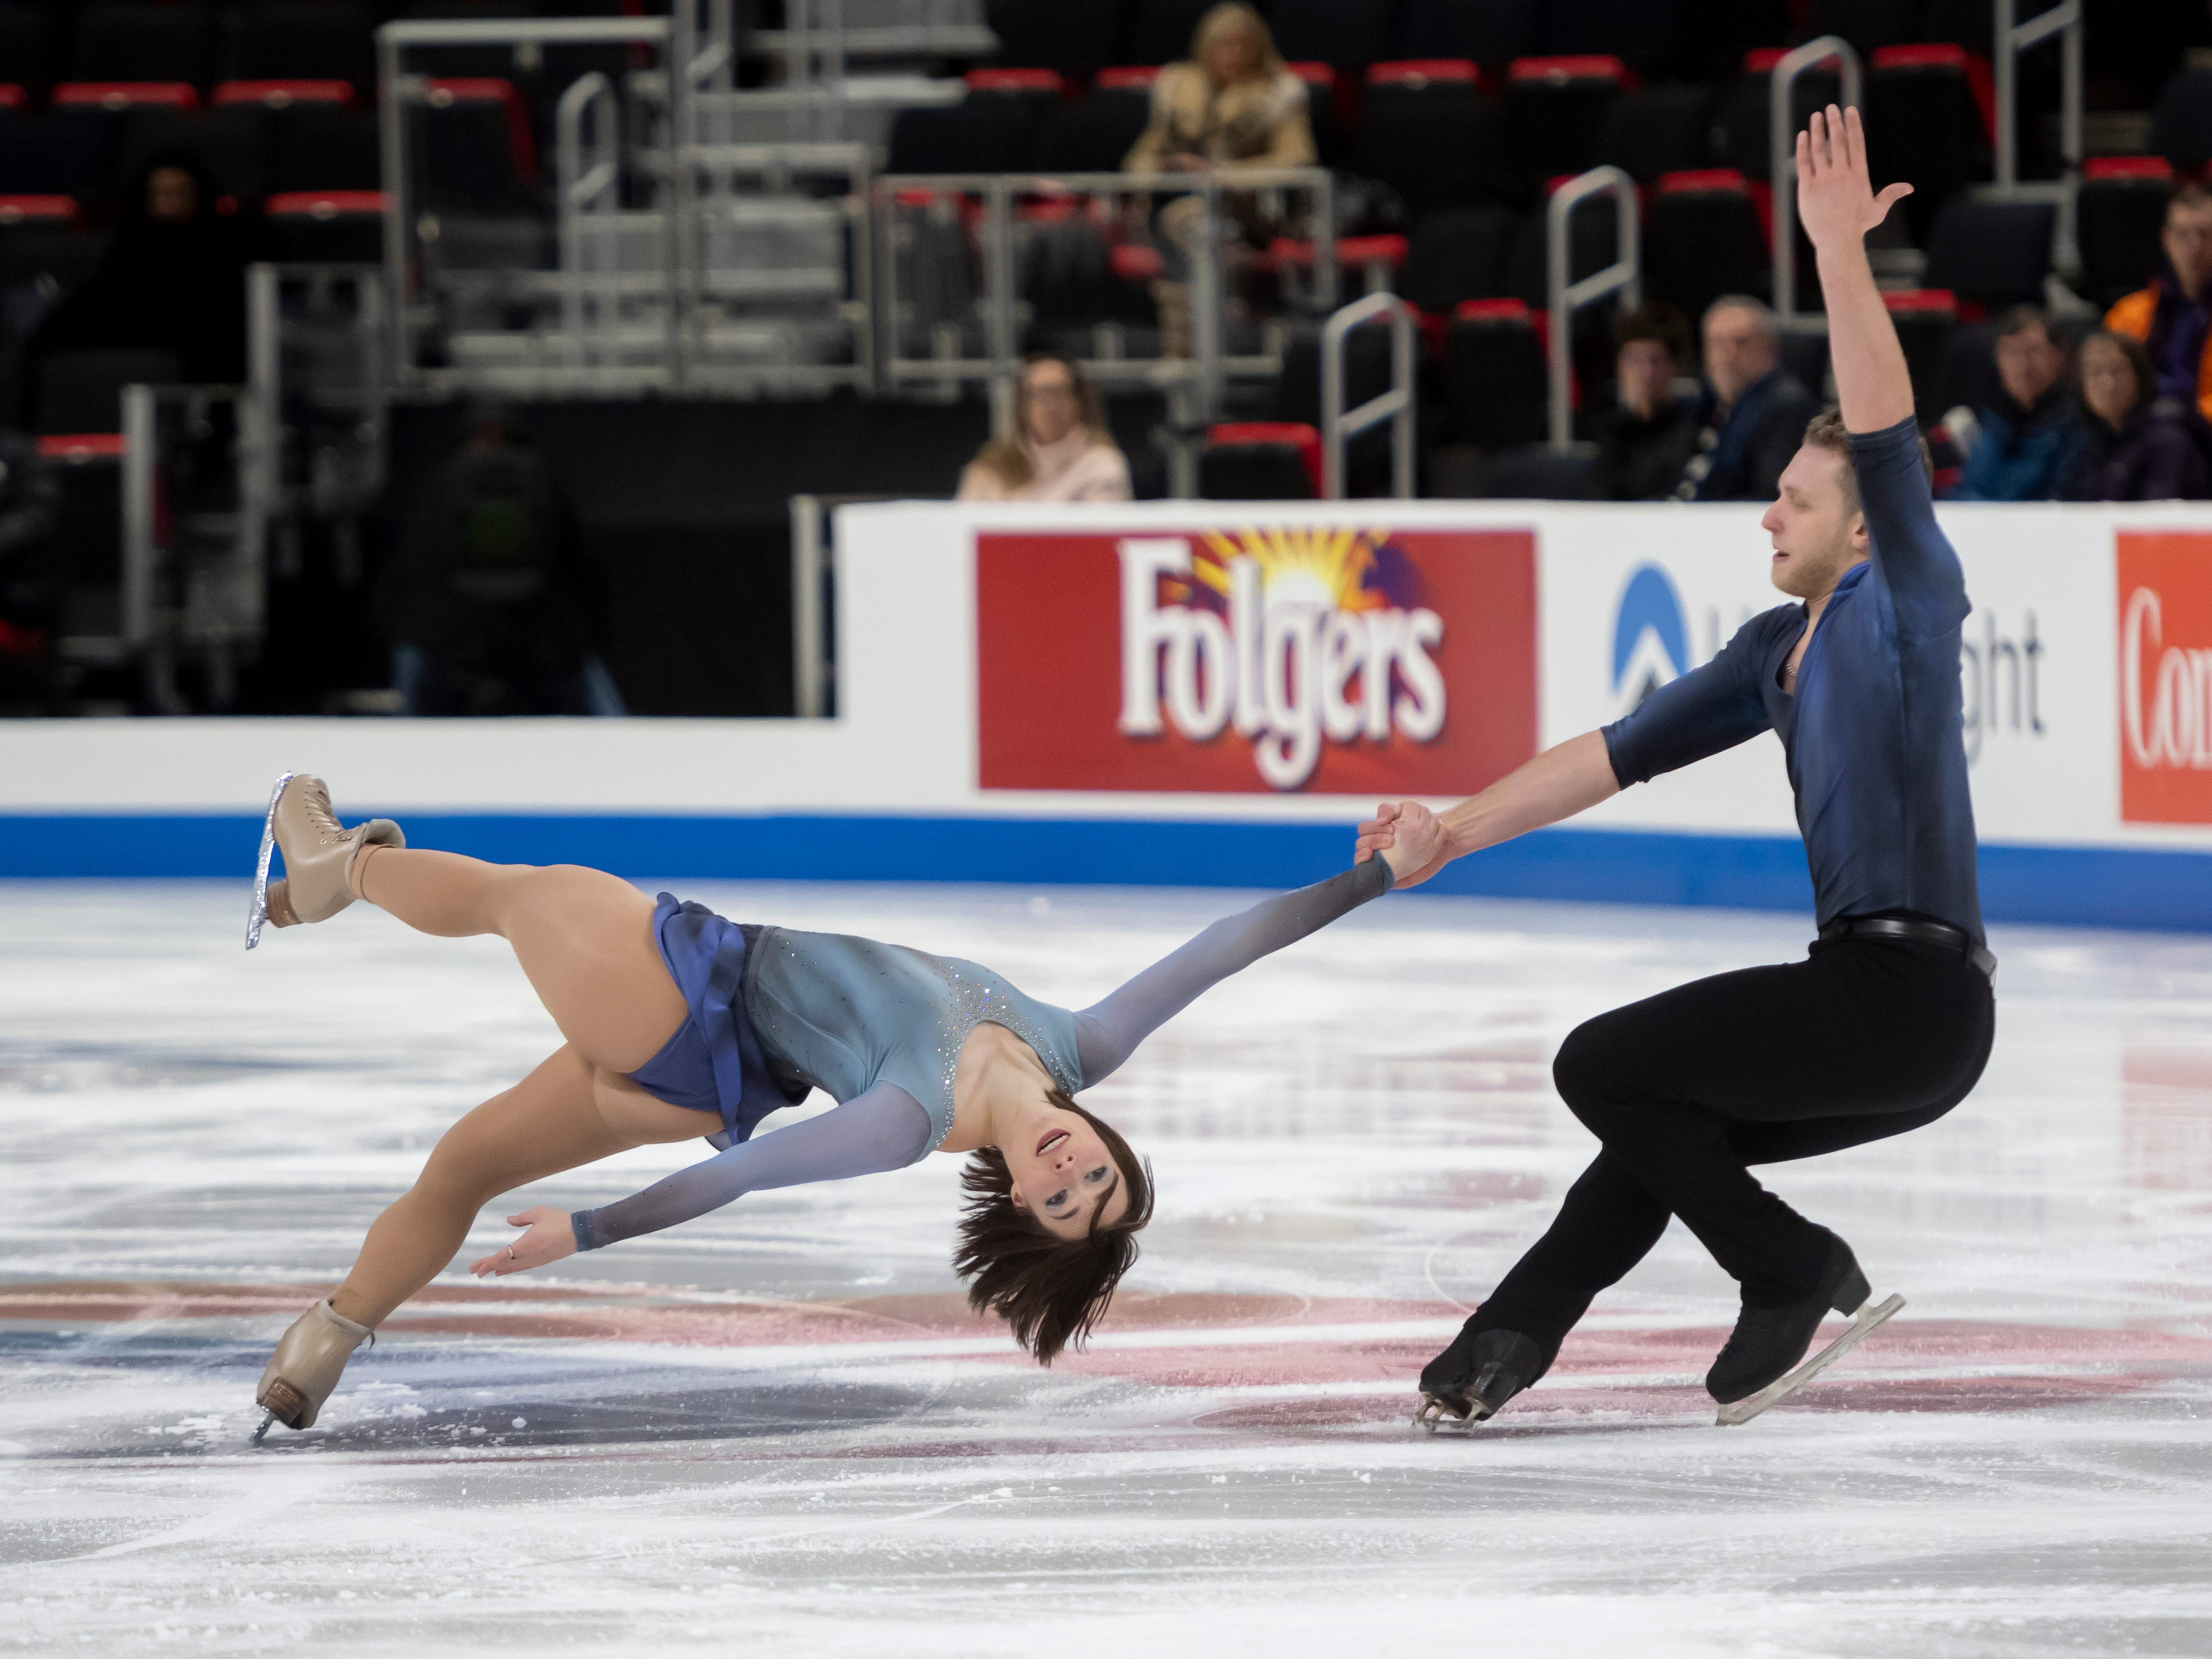 Allison Timien and Justin Highgate-Brutman compete in the senior pairs short program at the U.S. Figure Skating Championships.